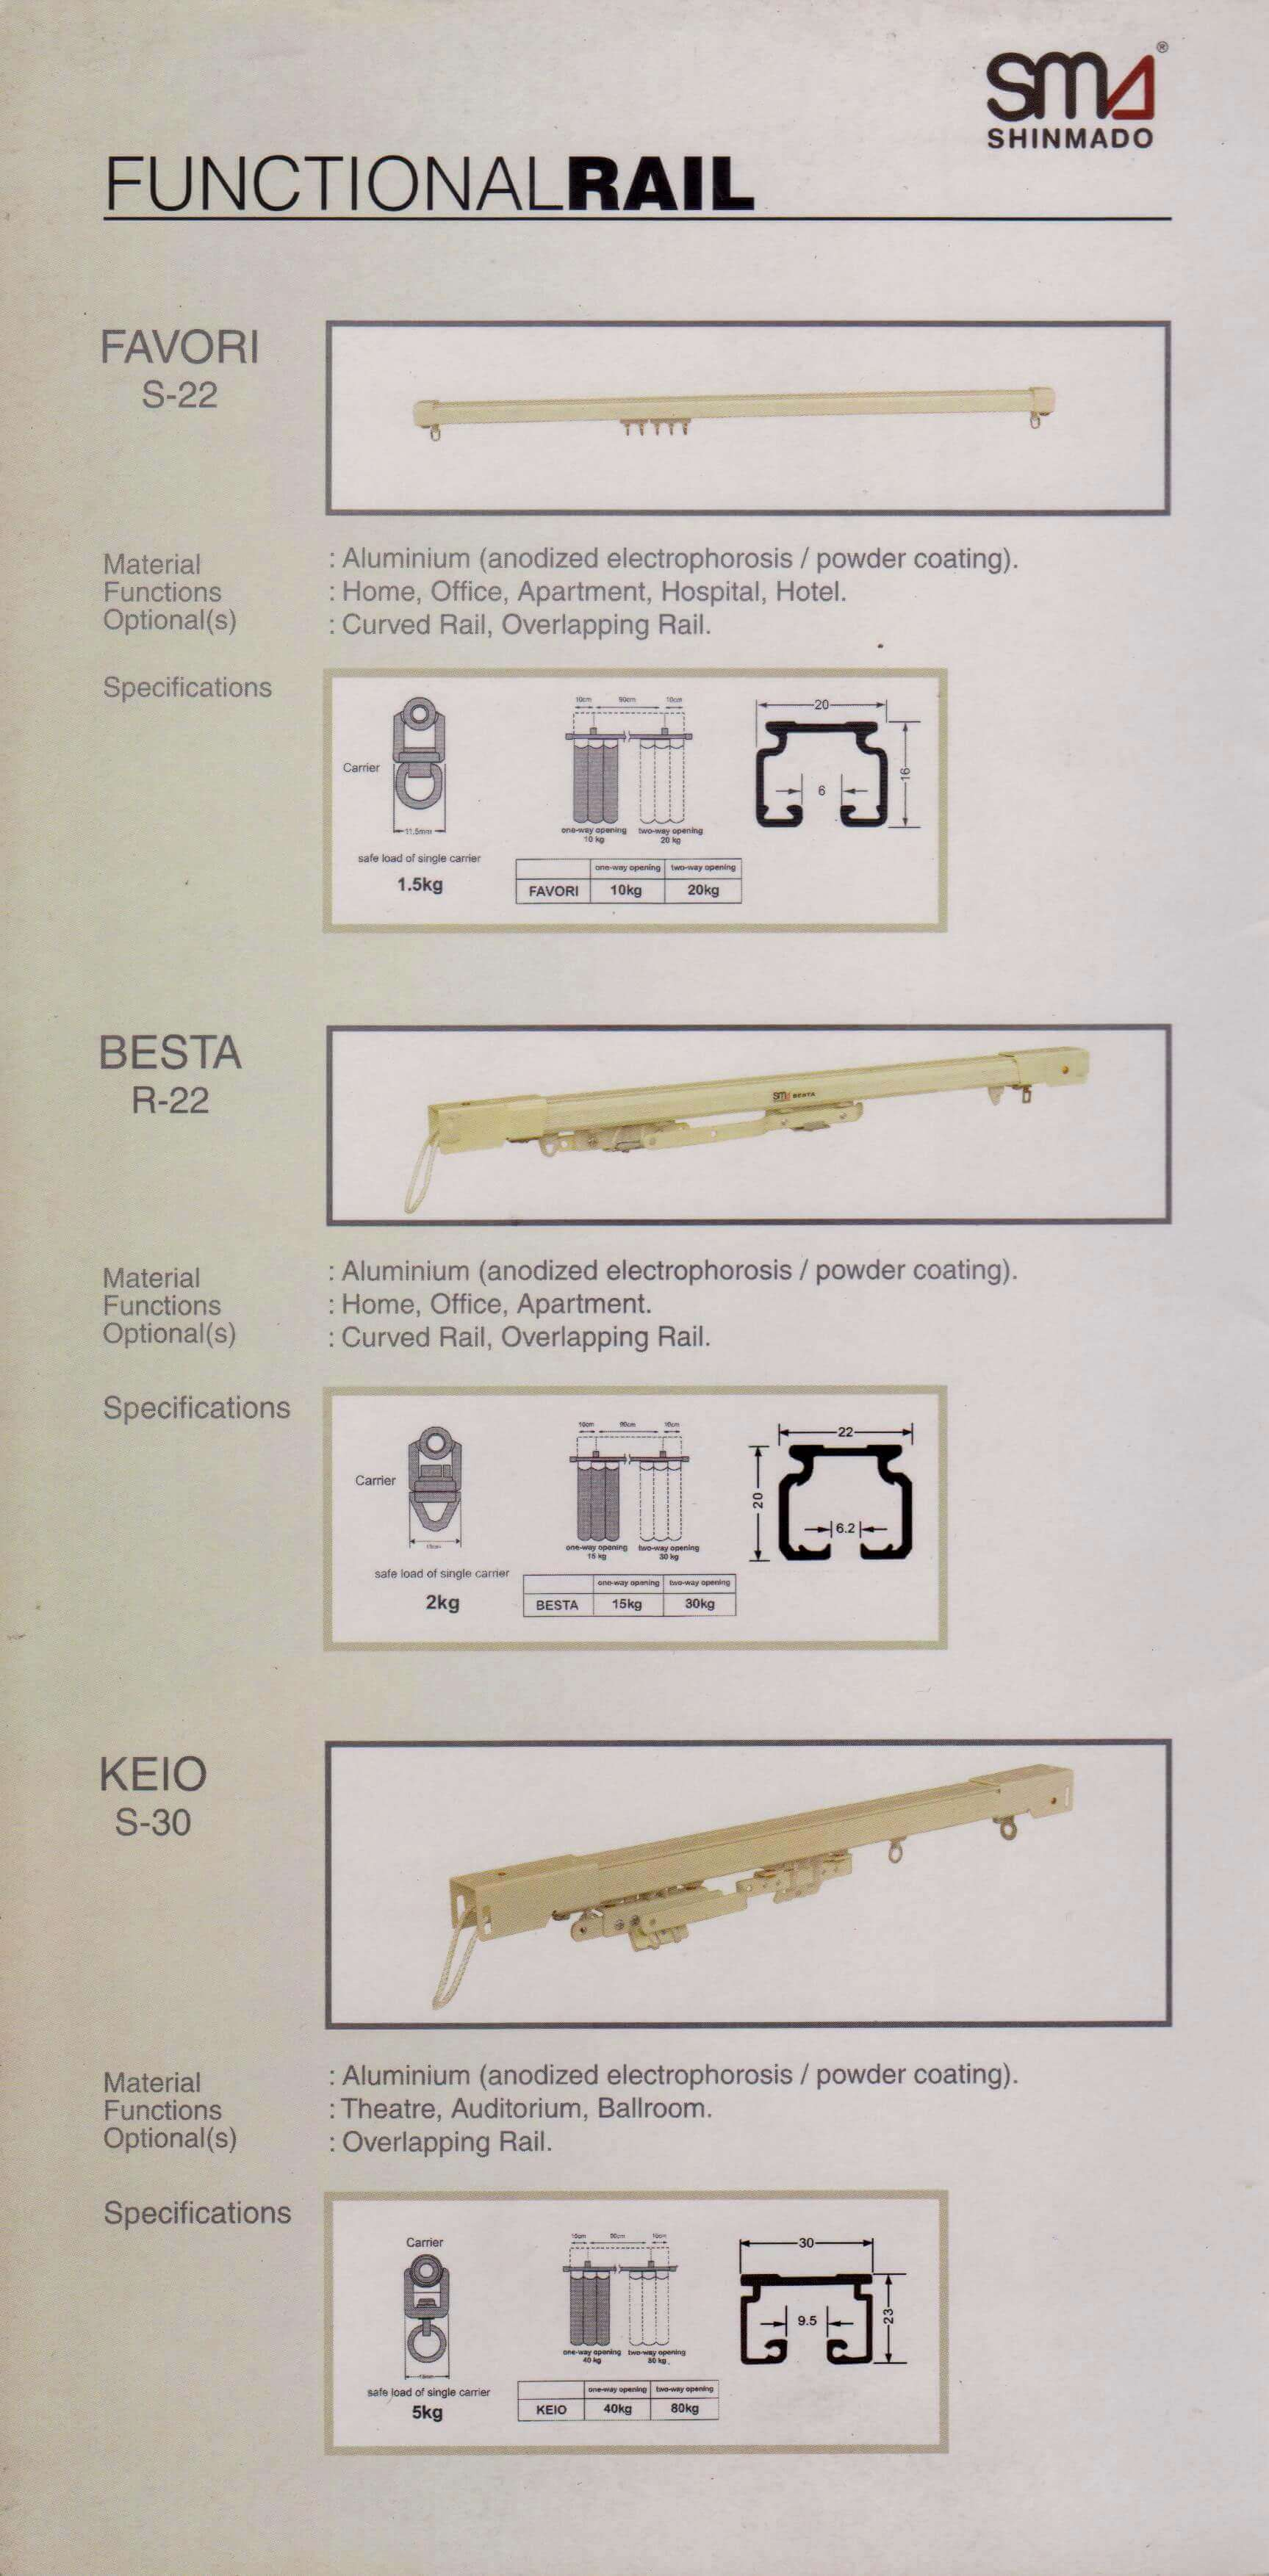 Shinmado Favori Besta Keio Functional Rail